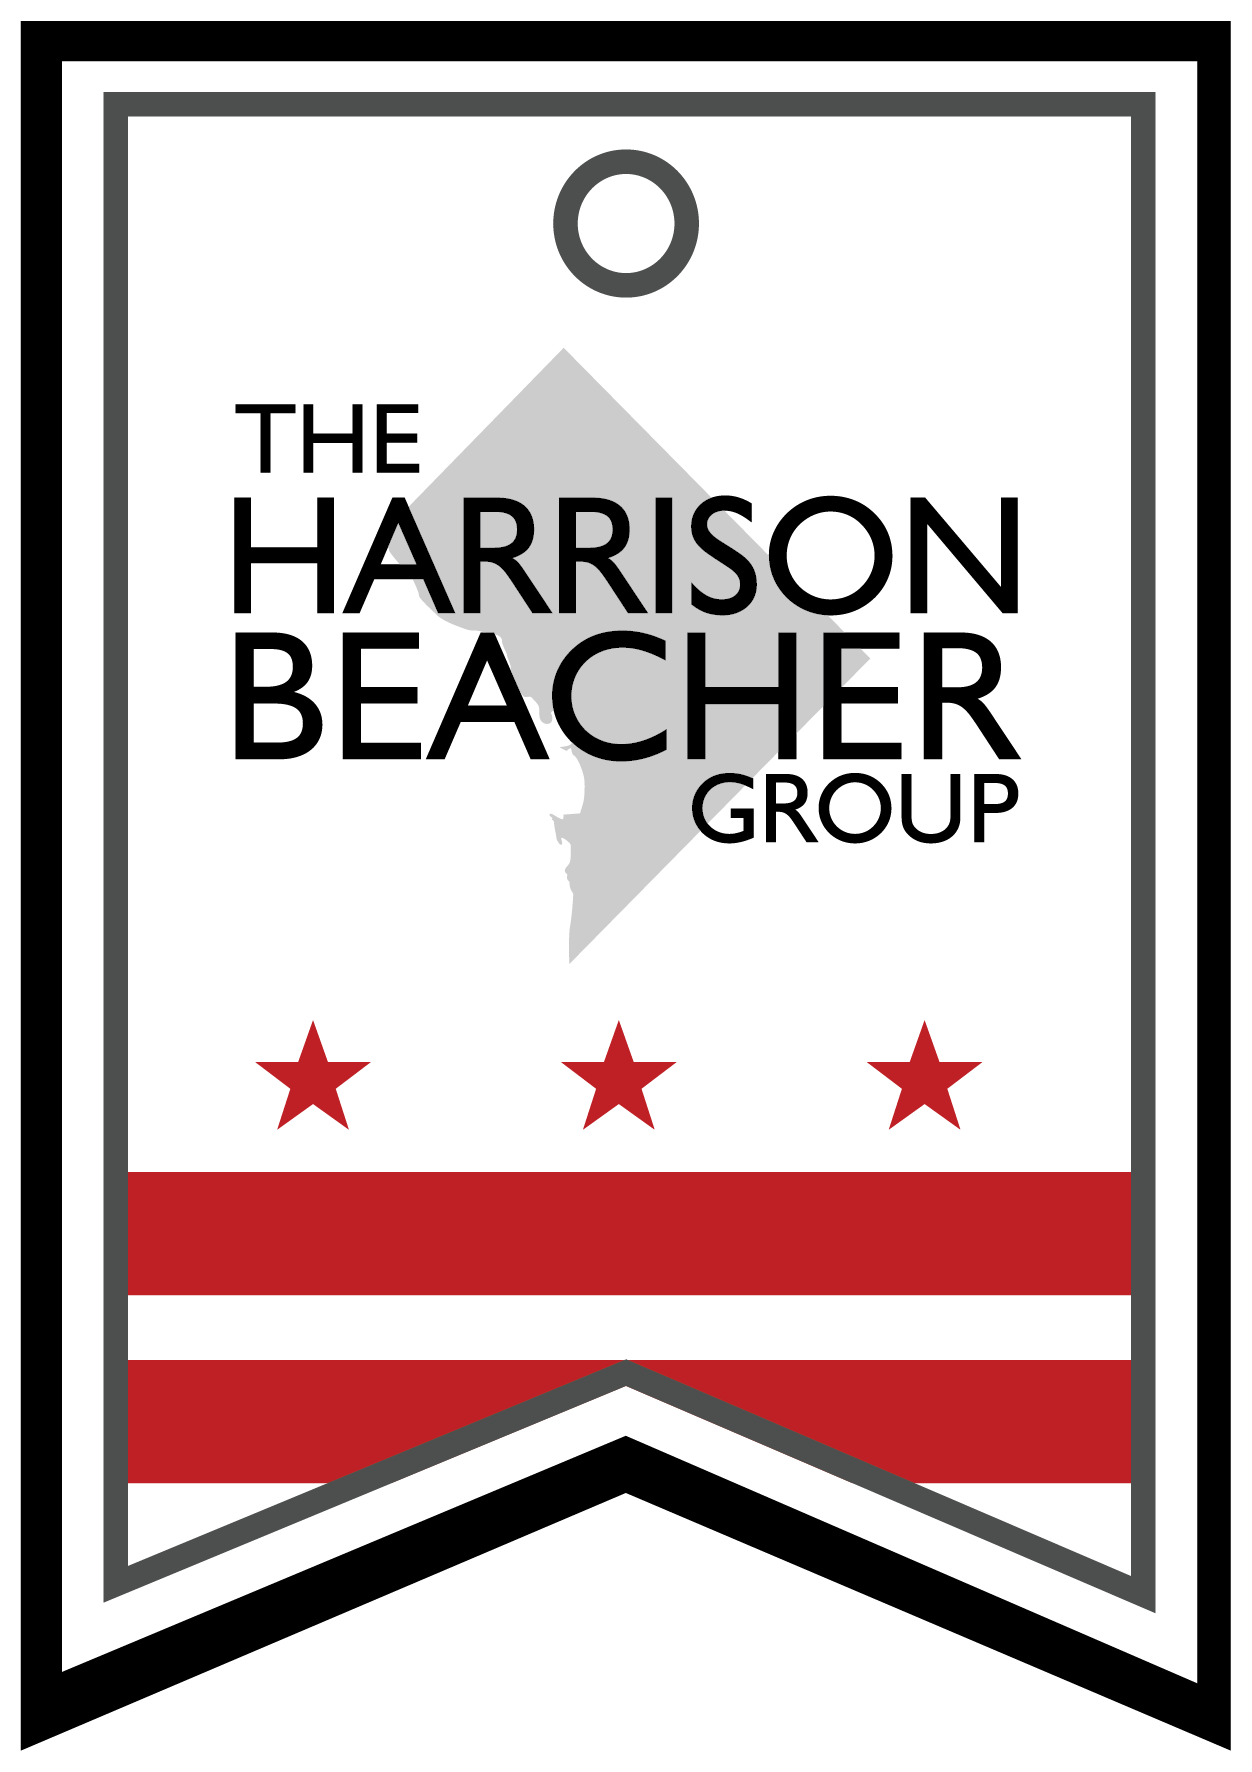 The Harrison Beacher Group